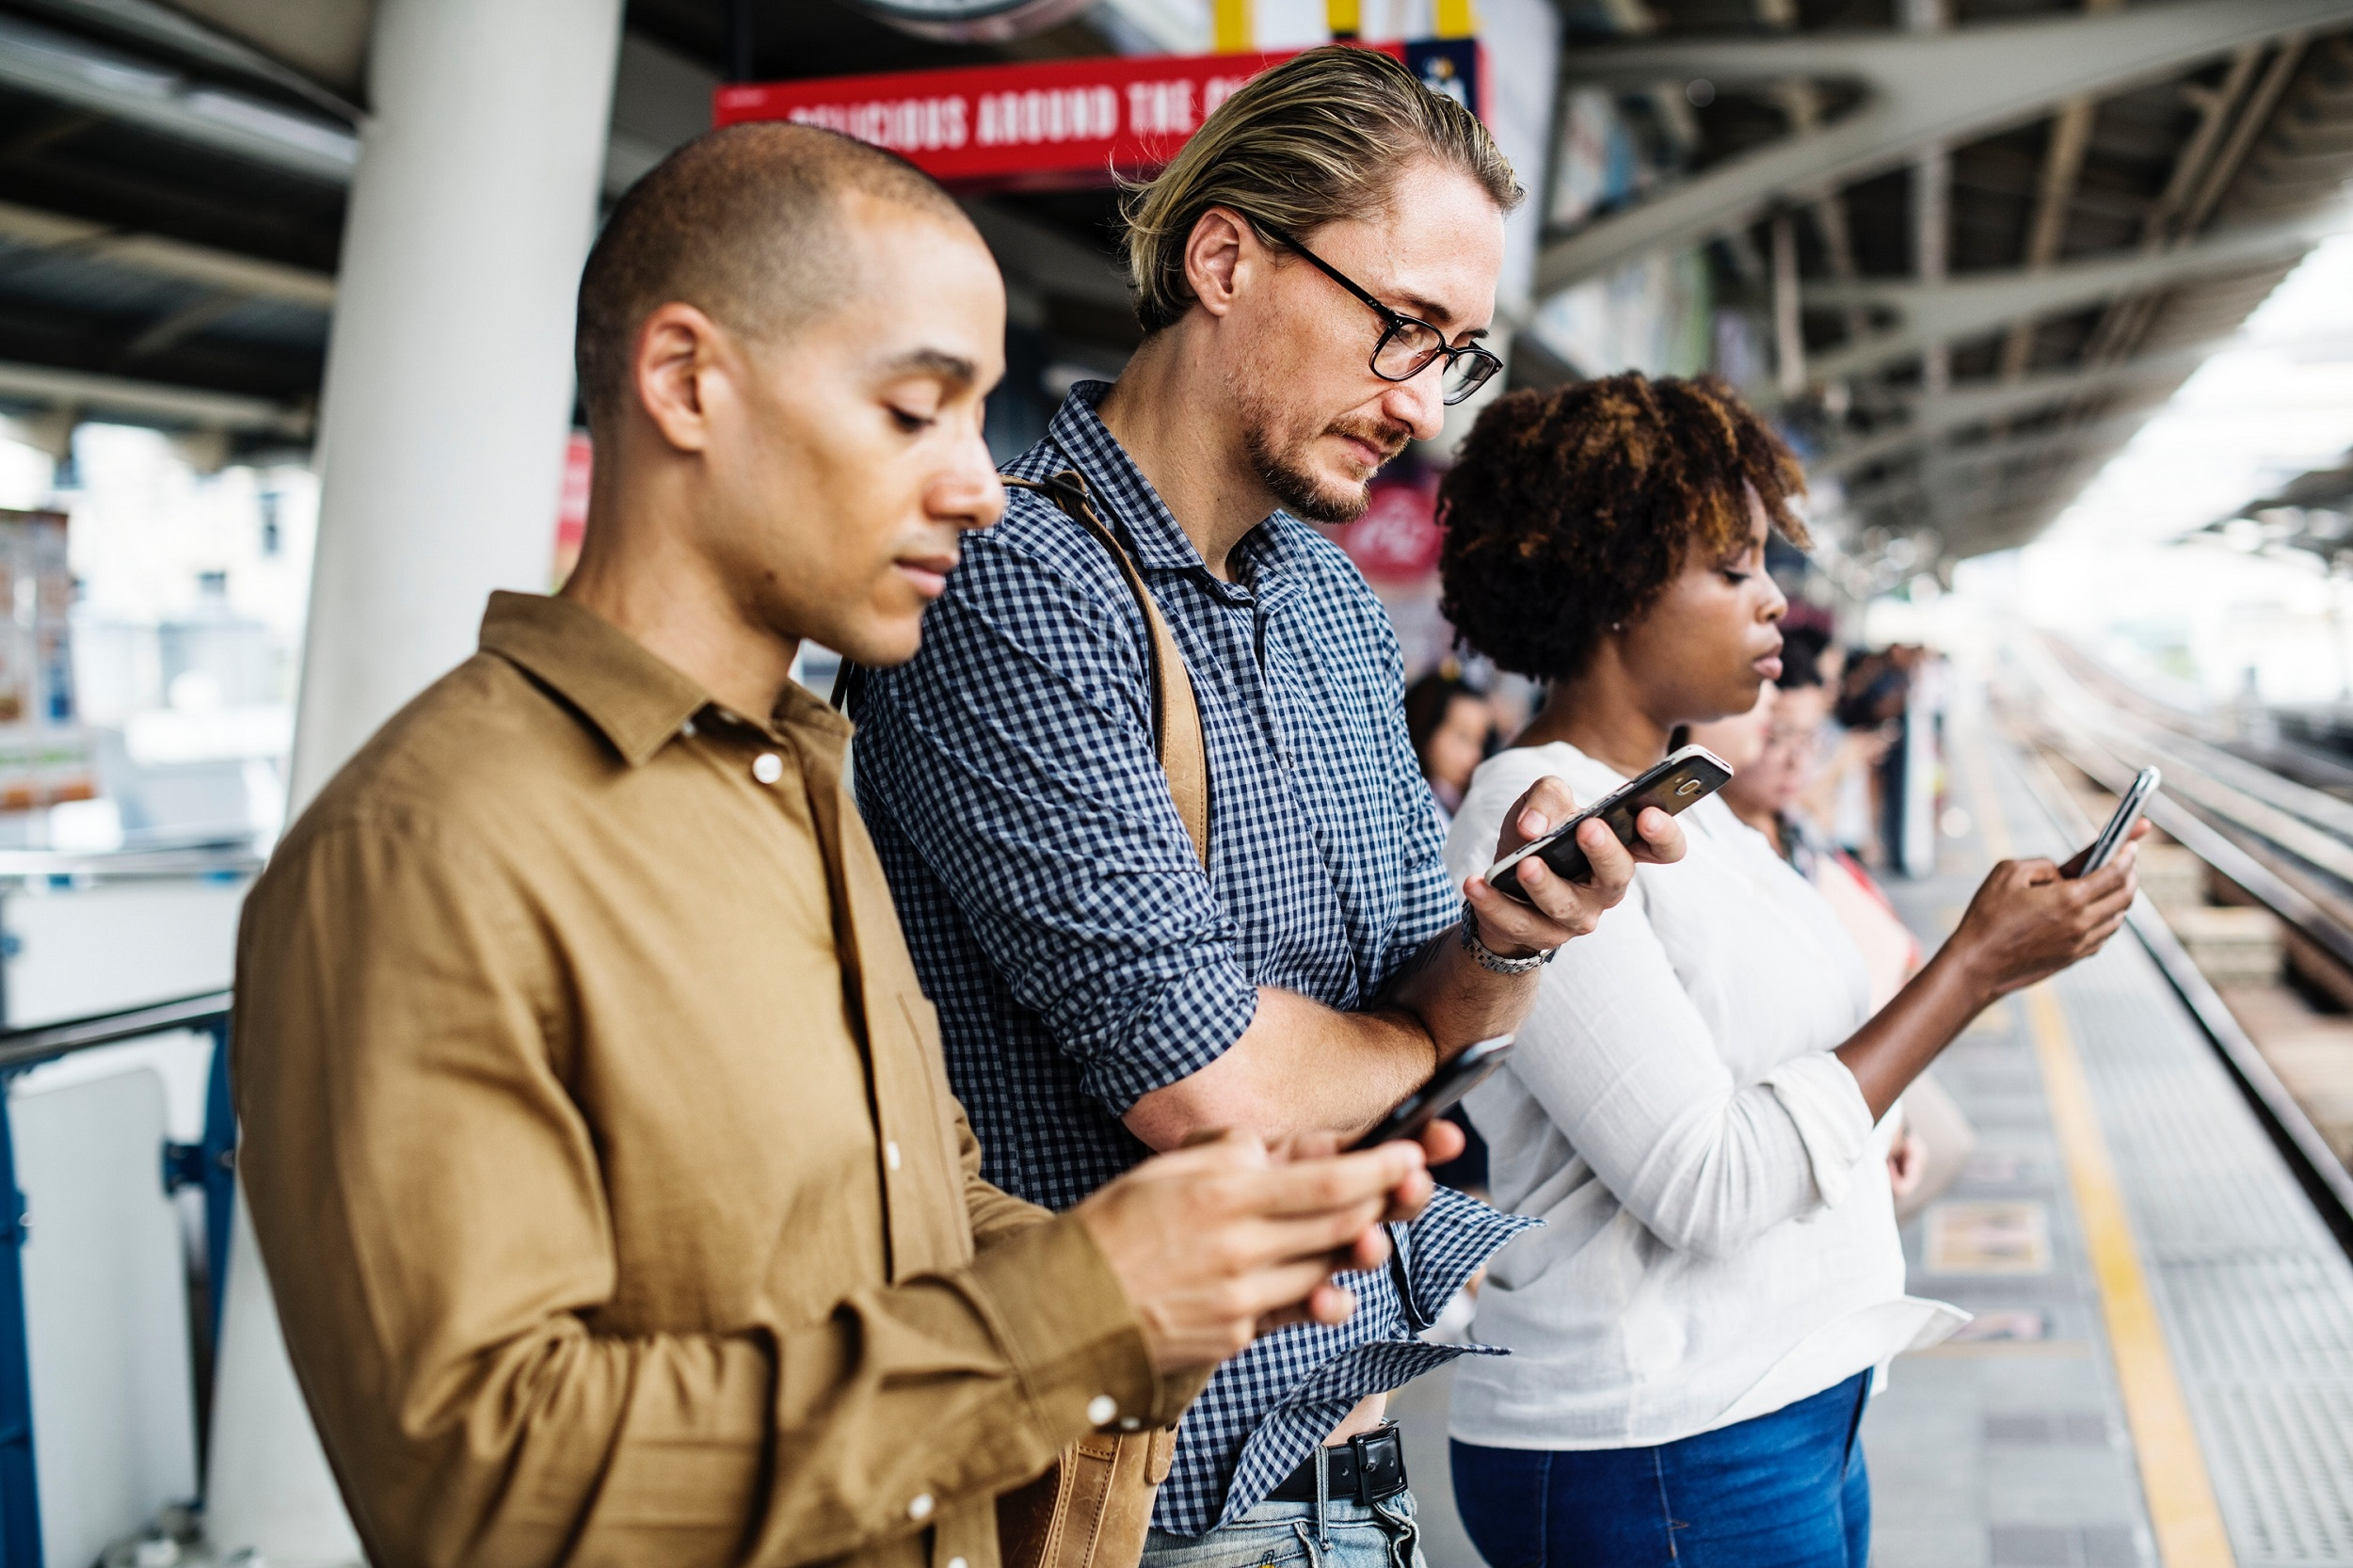 For some people, texting on the phone can be a literal pain in the neck. It's called Text Neck and with the drastic increase in texting and smart phone usage, it's coming close to being an epidemic. Texting could literally be changing your spine.